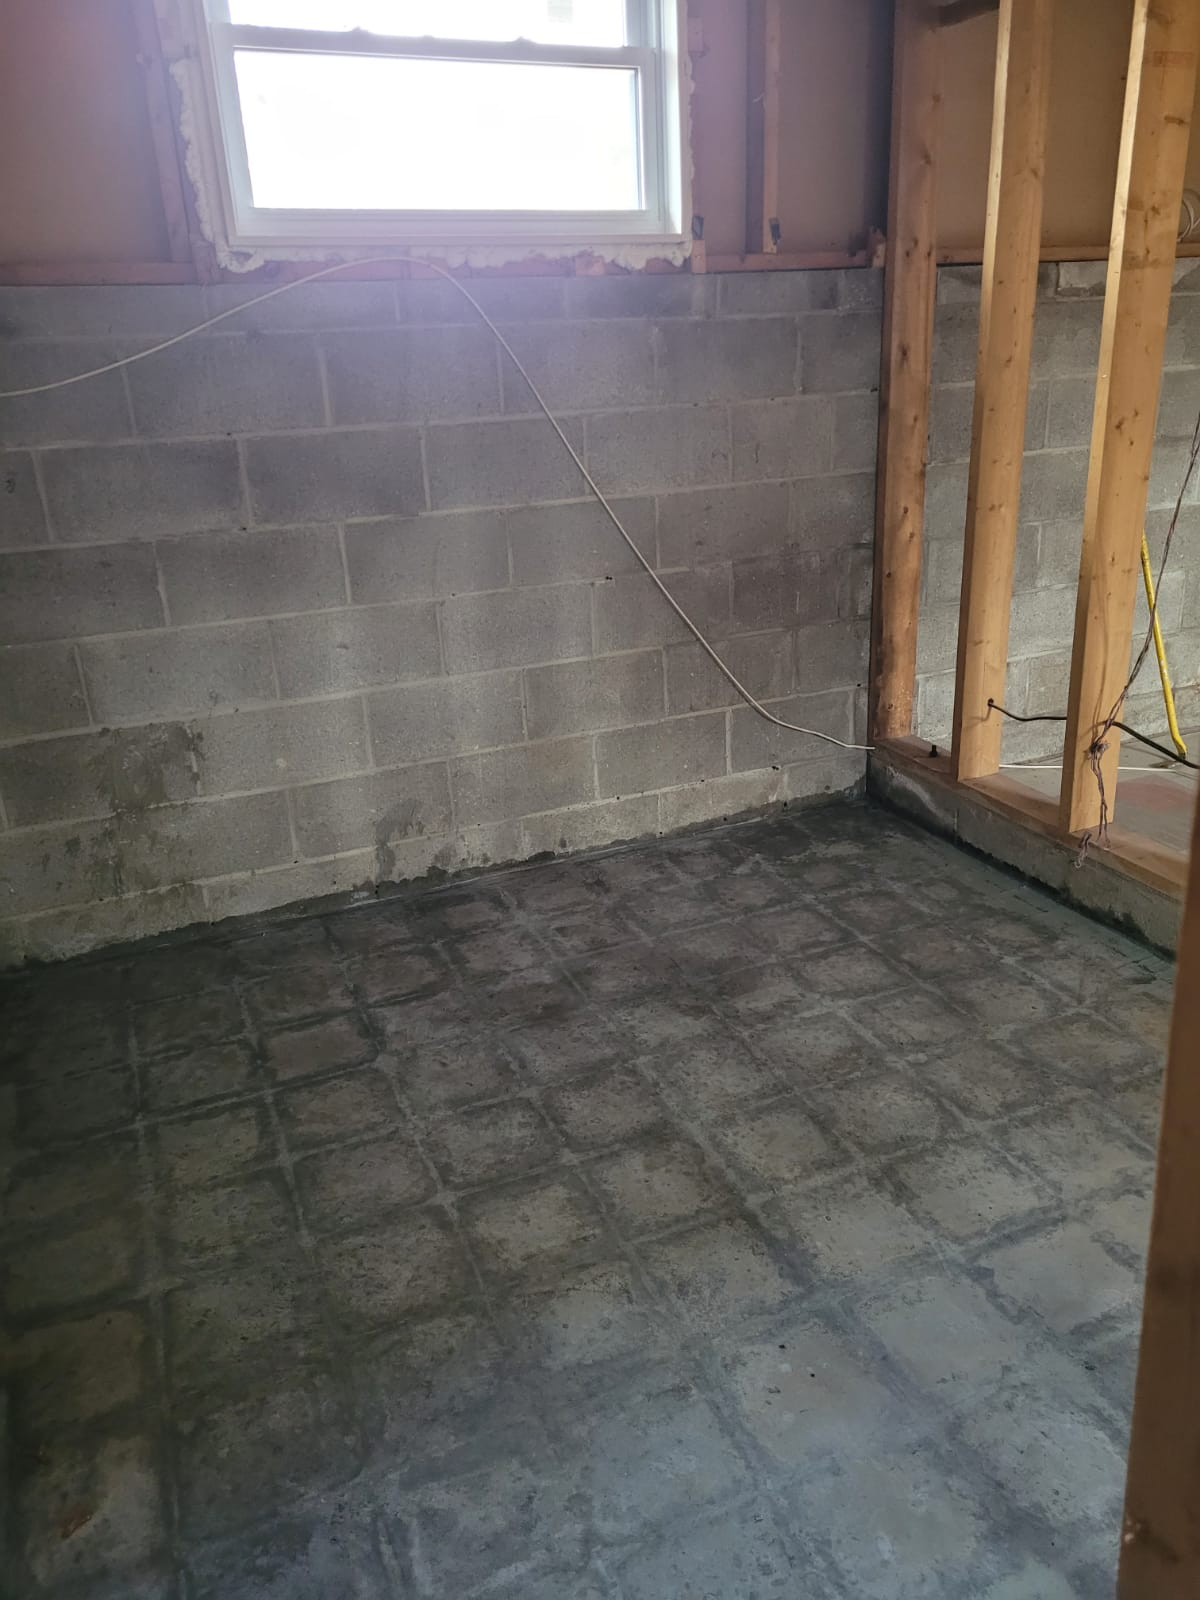 Removal of asbestos containing mastic adhesive from concrete floor (After Photo)